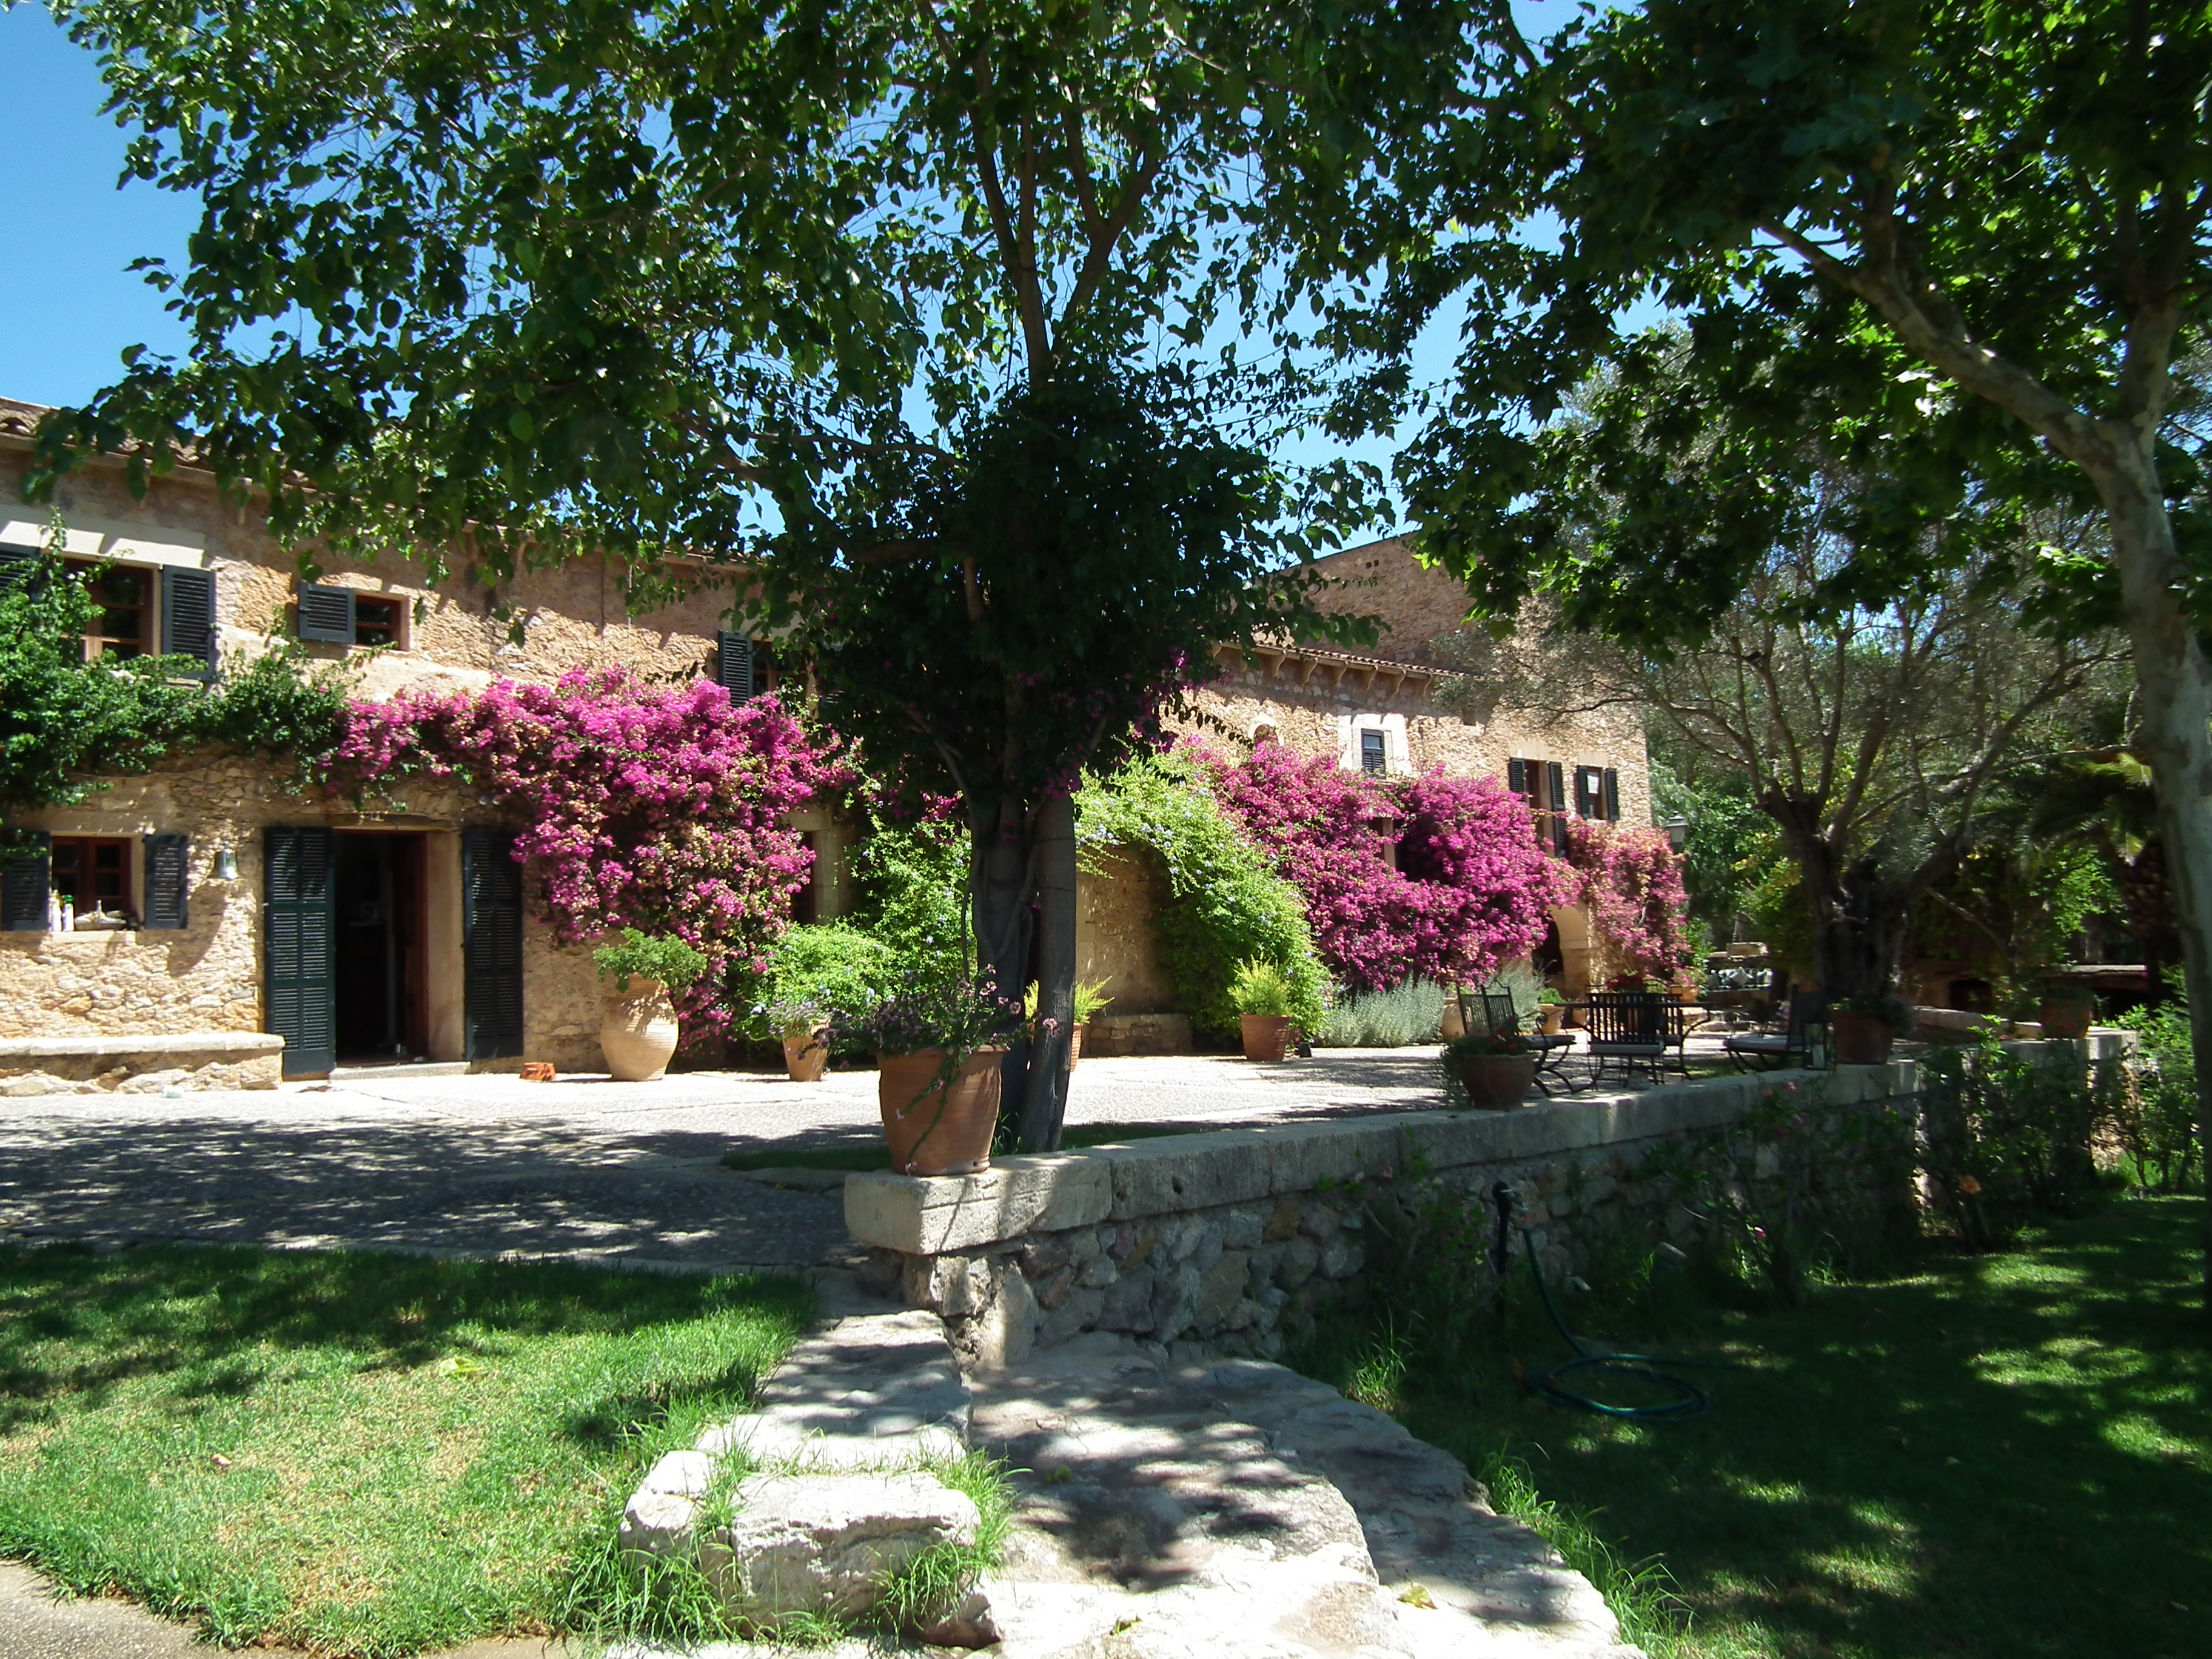 Luxury estate on Mallorca with large stone house set in 140.000sqm plot